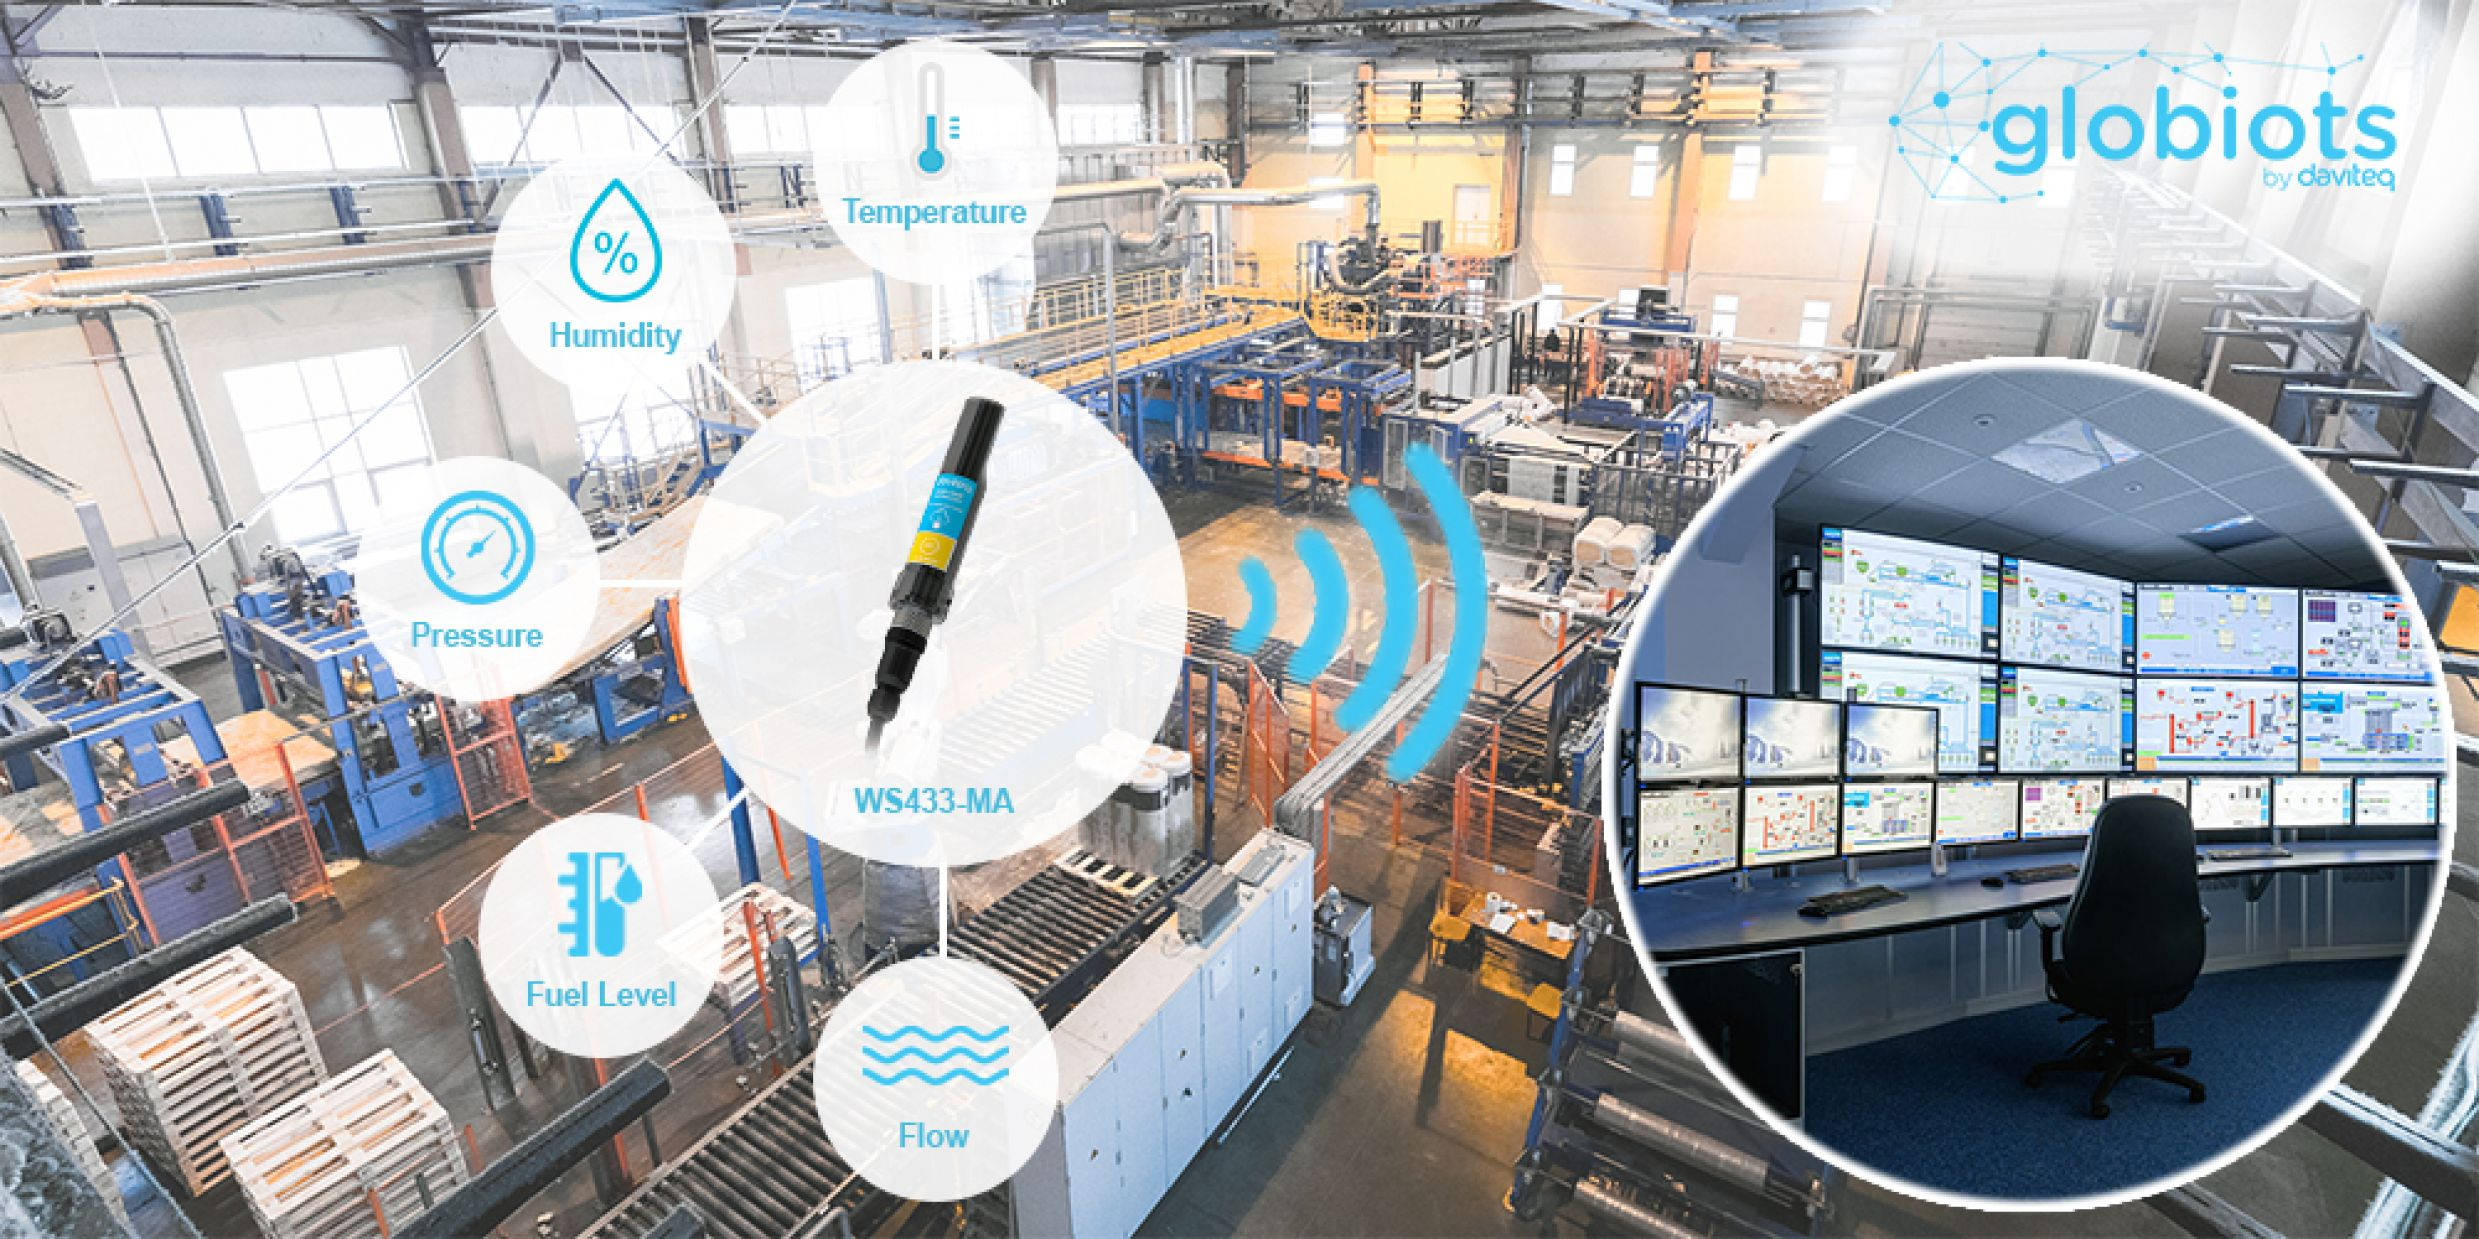 Wireless sensor network replaces traditional 4-20mA wired network